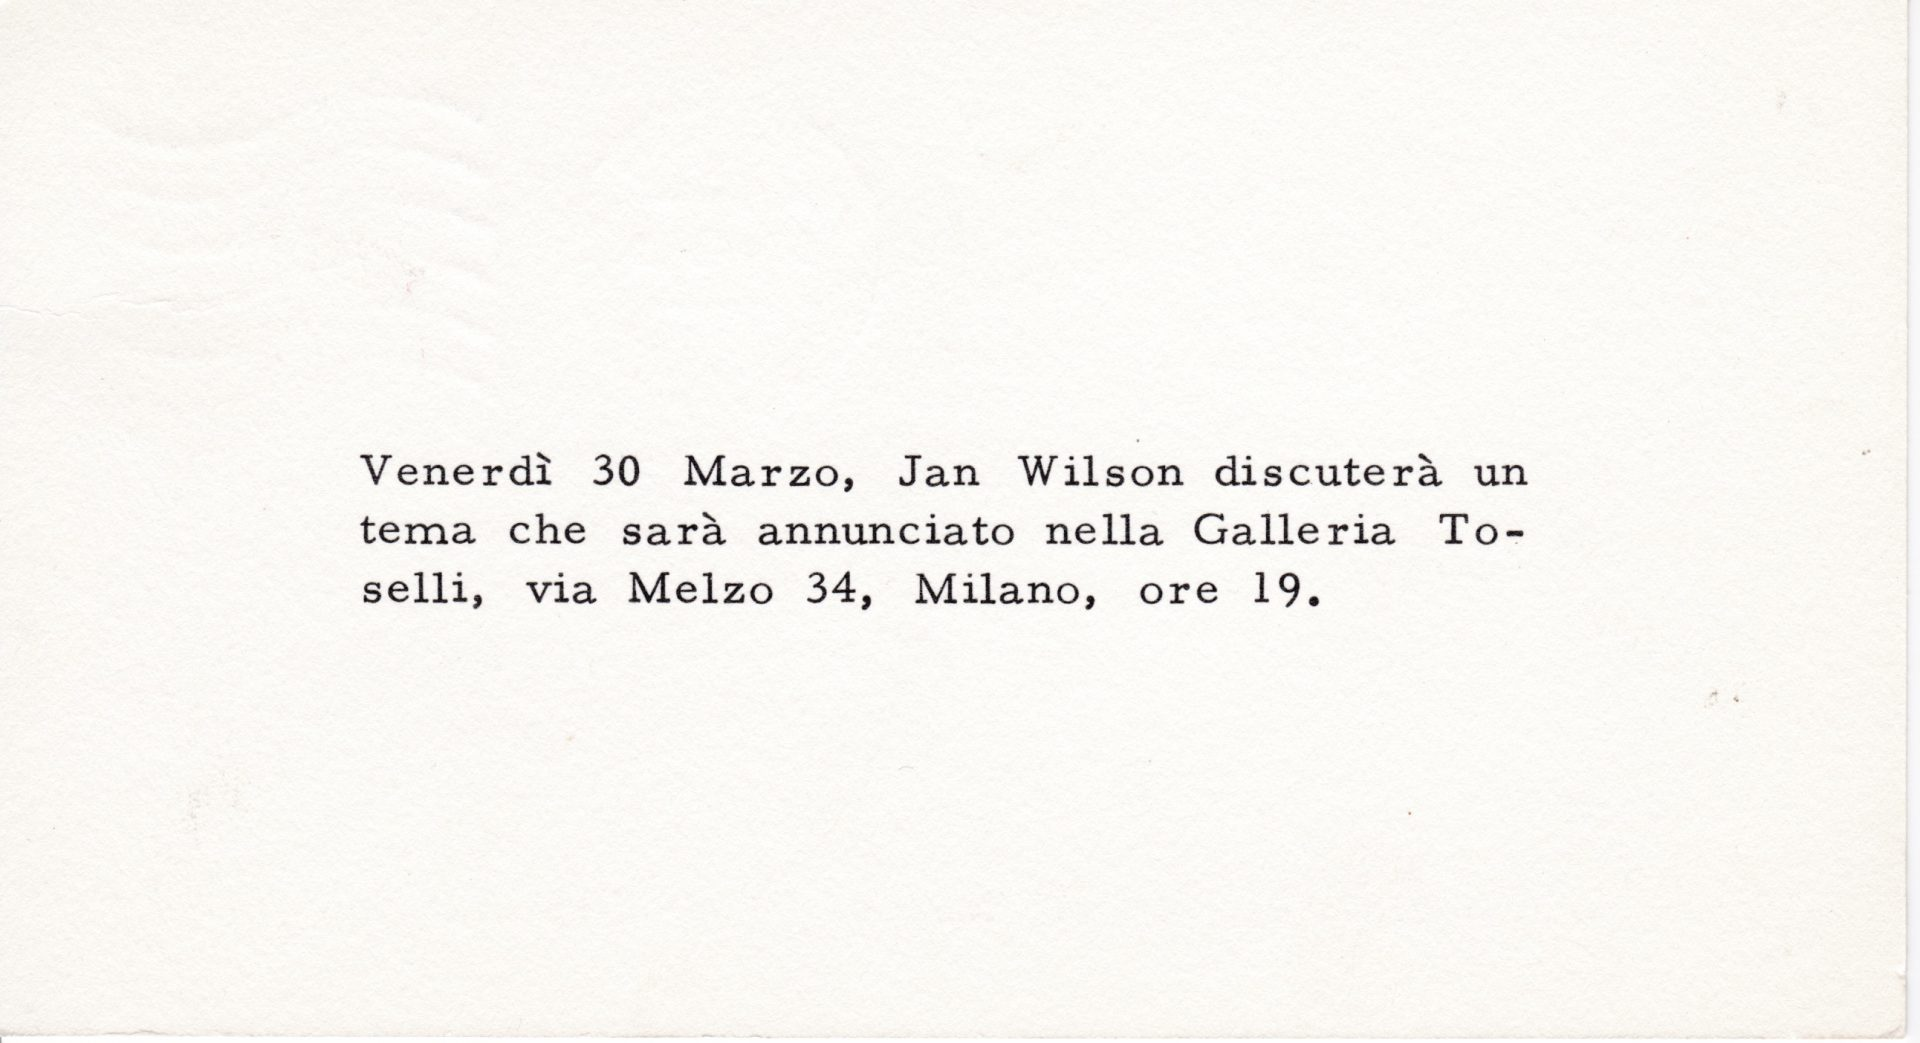 Ian Wilson - Invitation card for his discussion at Galleria Toselli in Milan, March 30, 1973